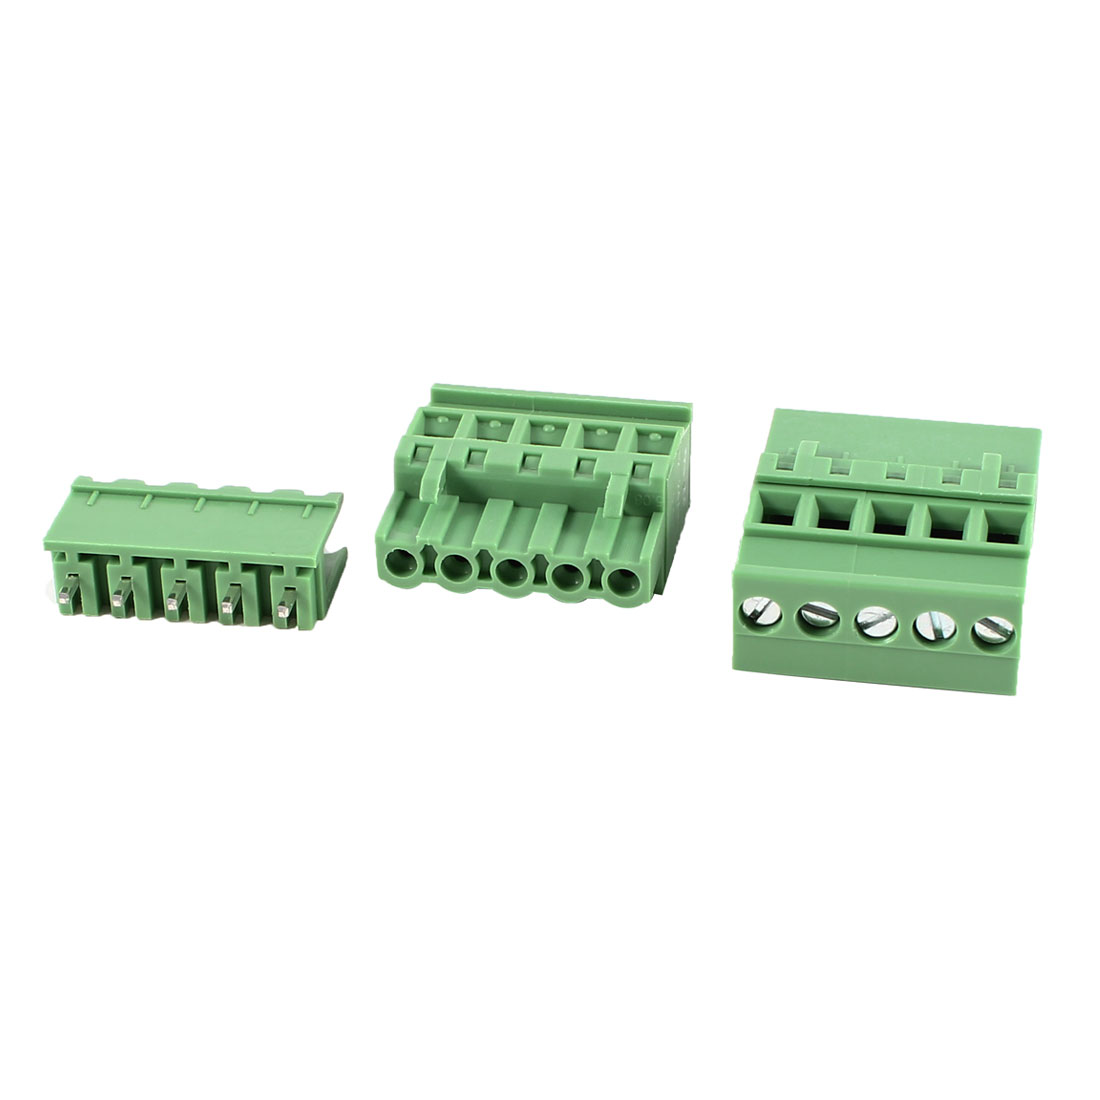 2Pcs Green KF2EDGKA 5.08mm 5Position Screw Pluggable Terminal Block Connector 300V 10A